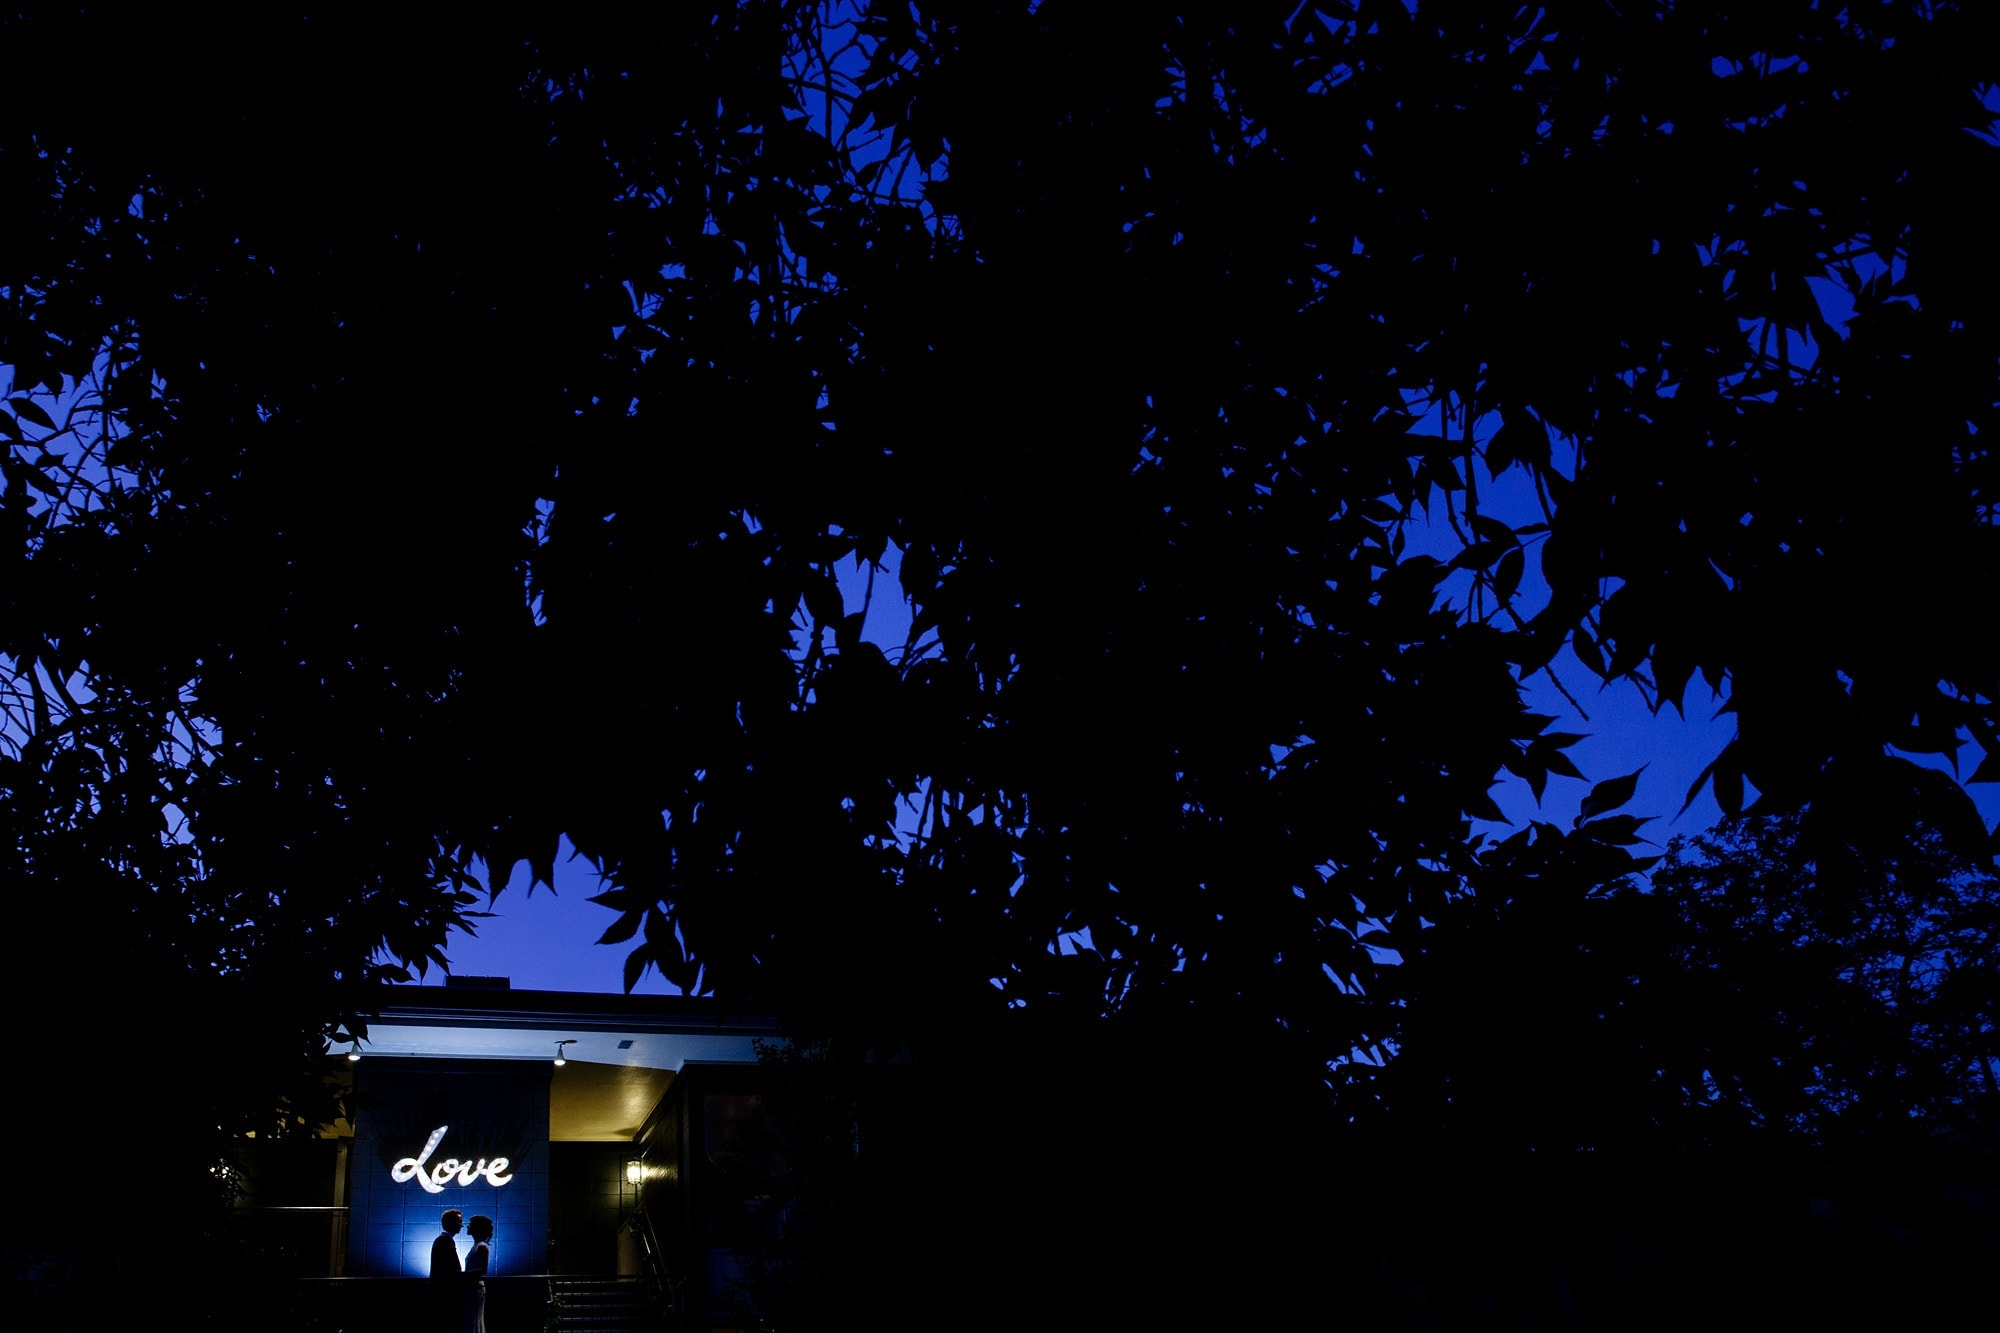 The couple shares a moment together outside of Rembrandt Yard in Boulder during twilight